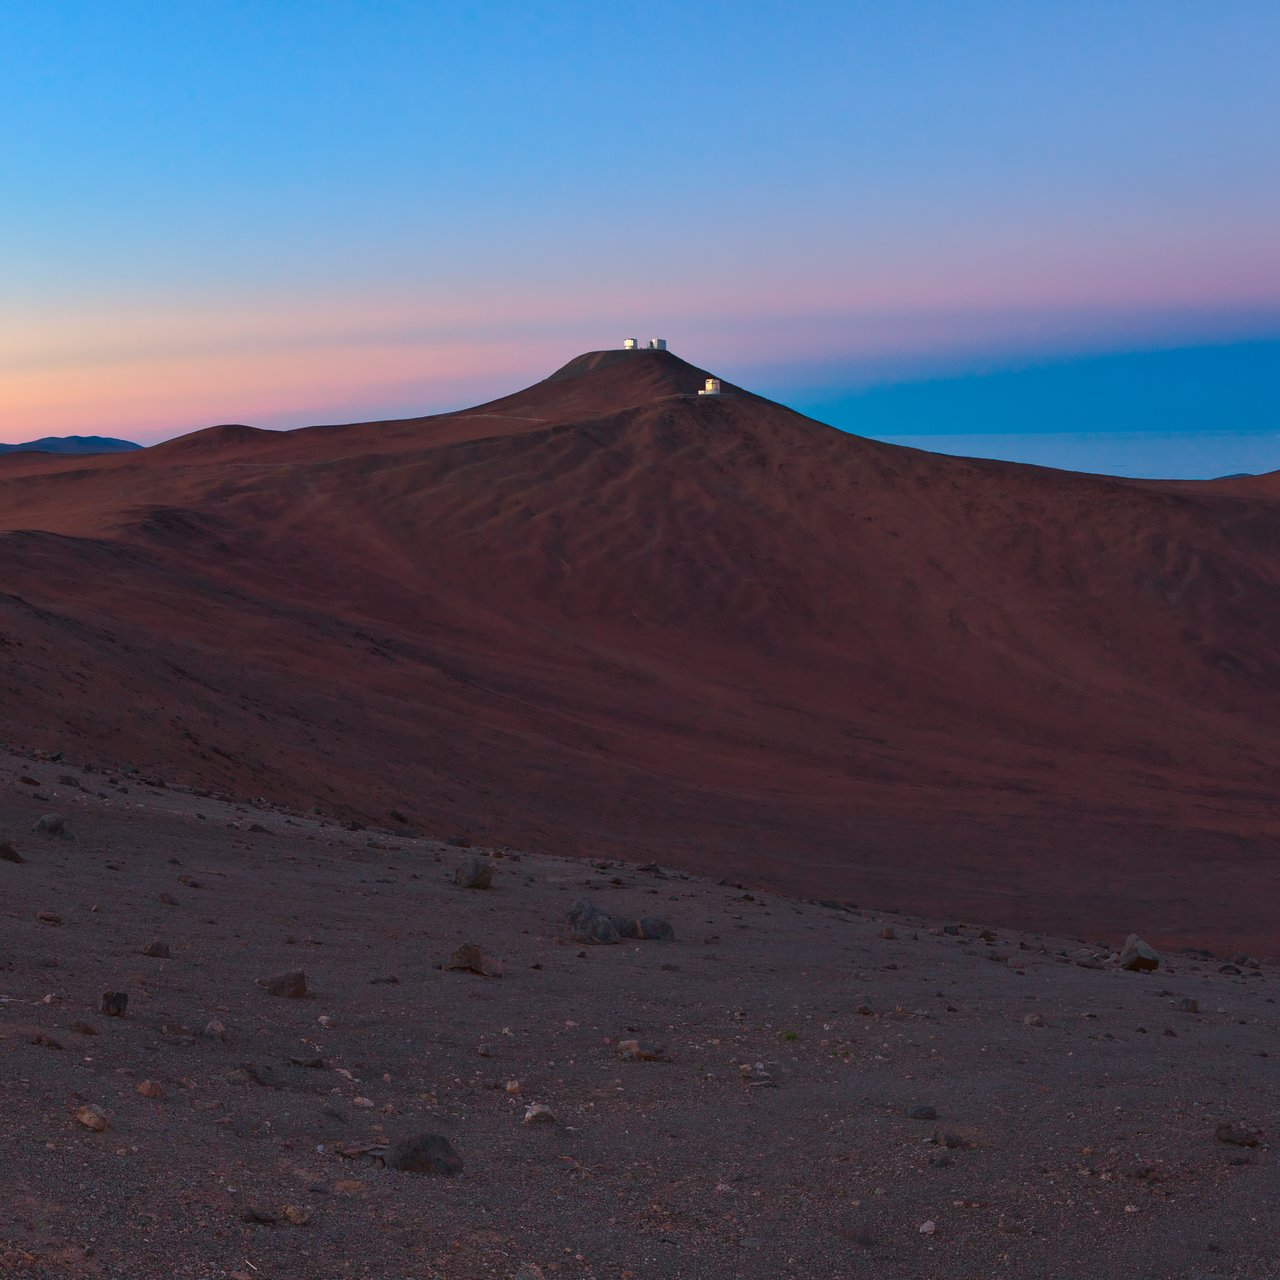 Paranal in the distance